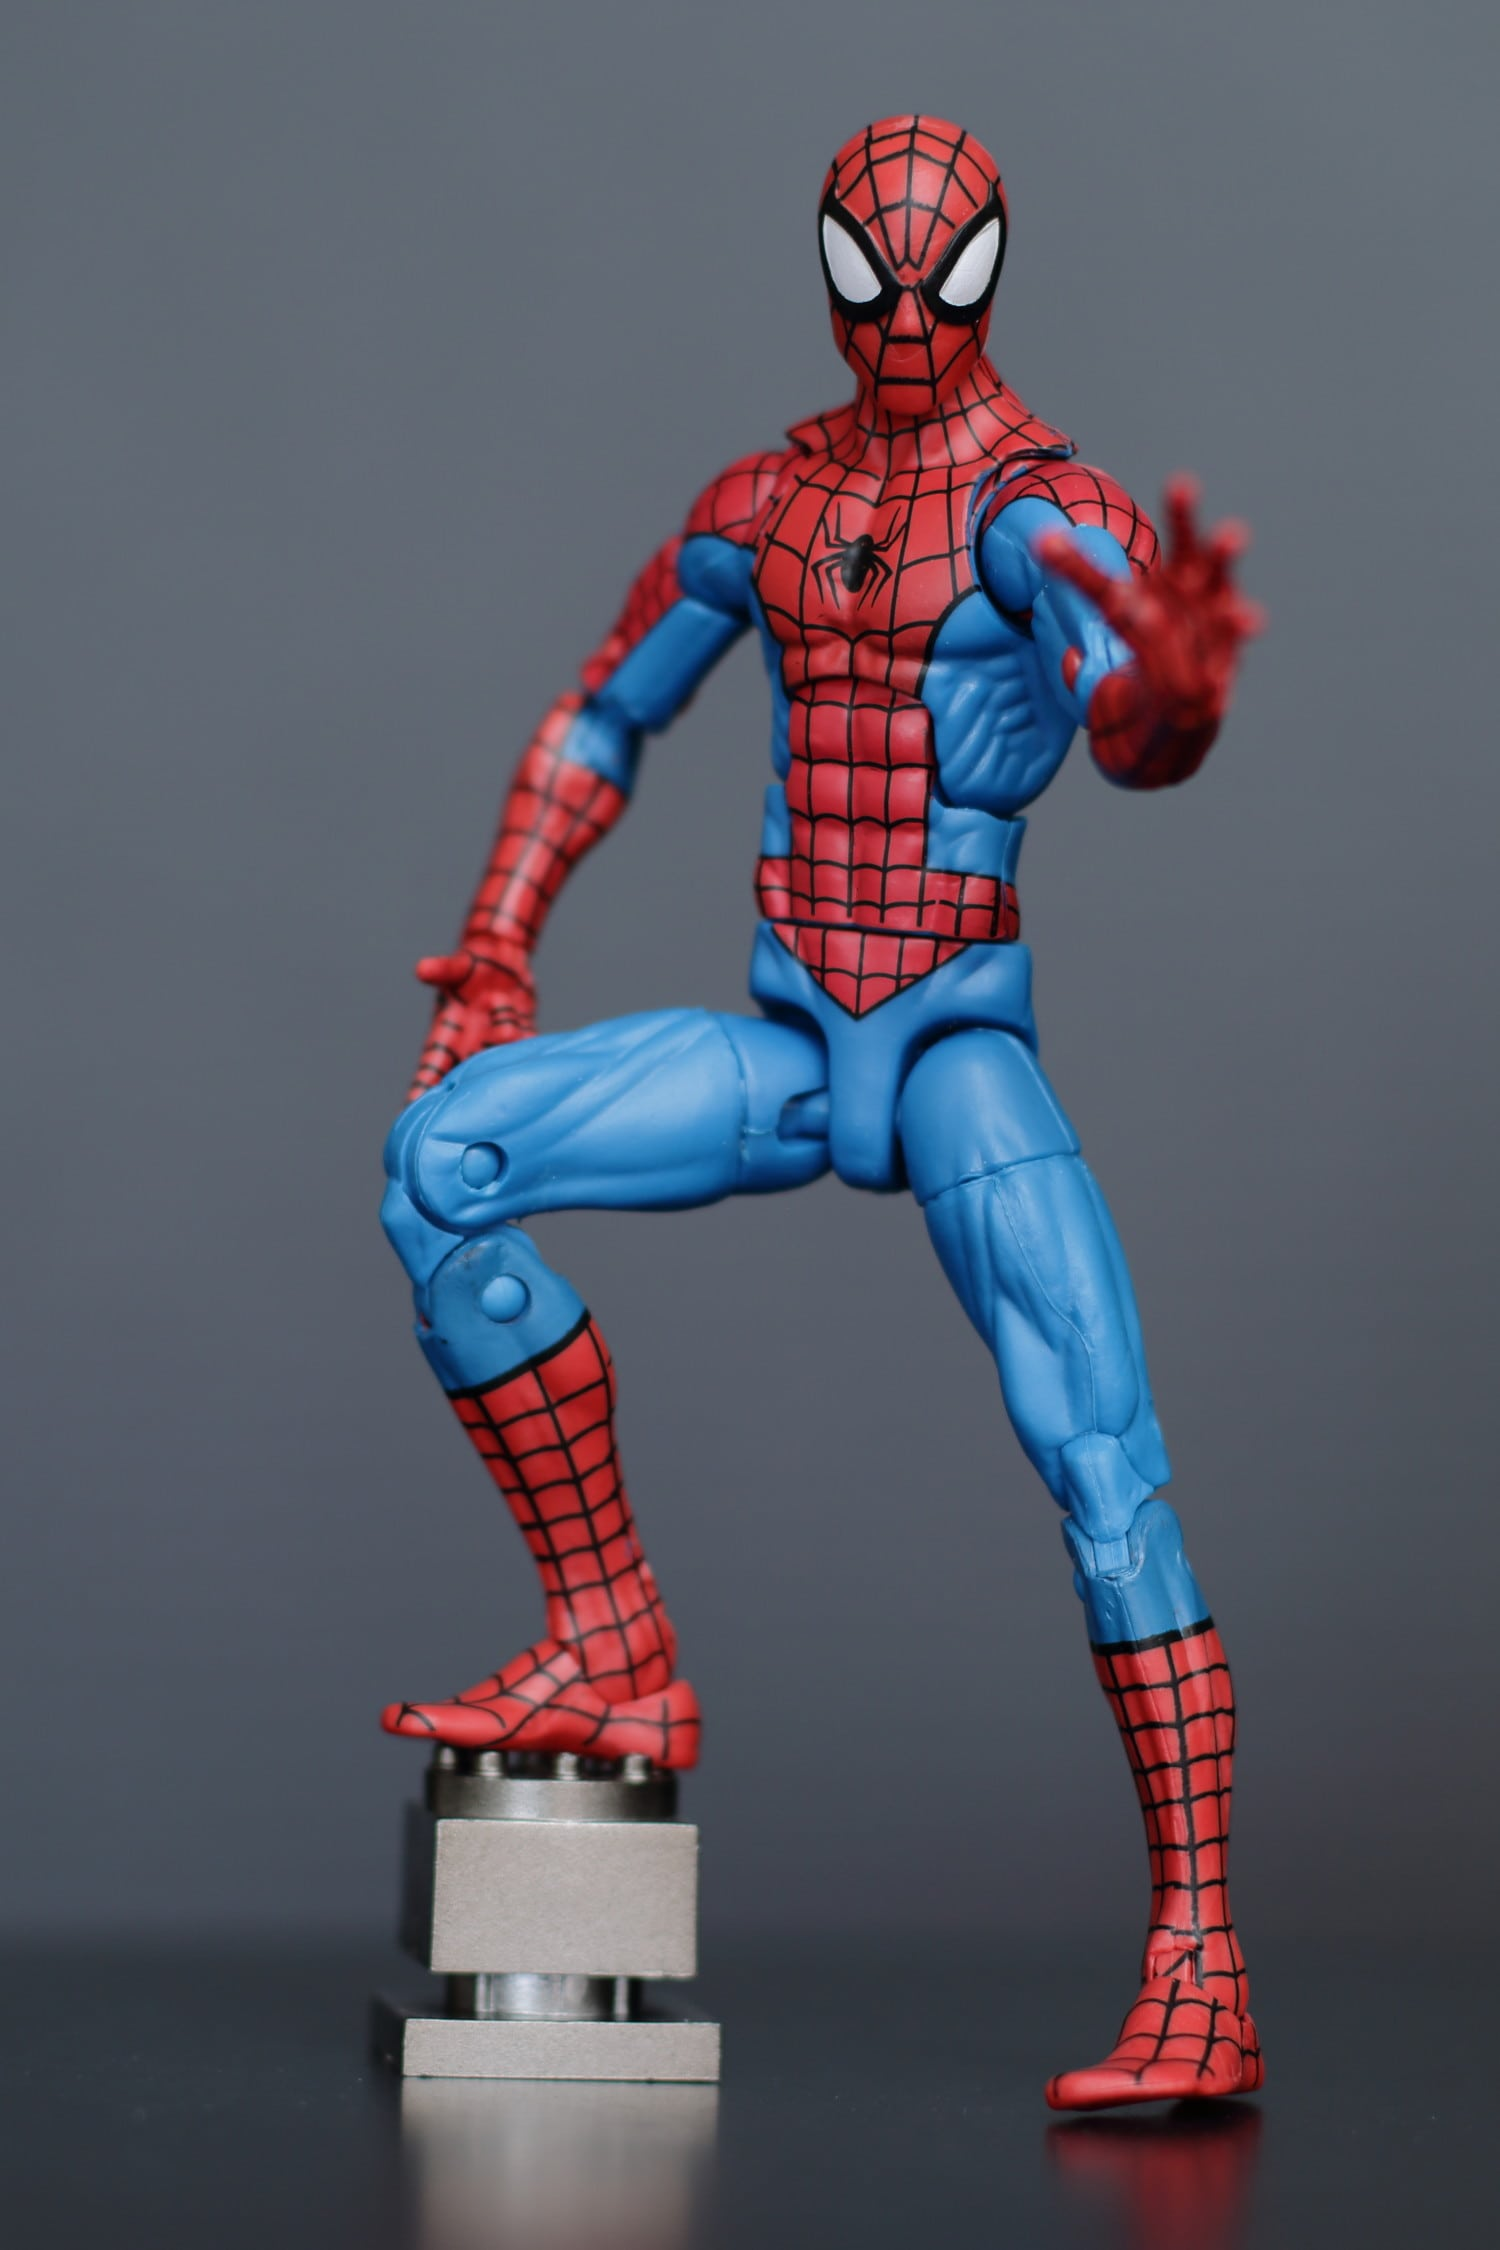 spiderman figure photo